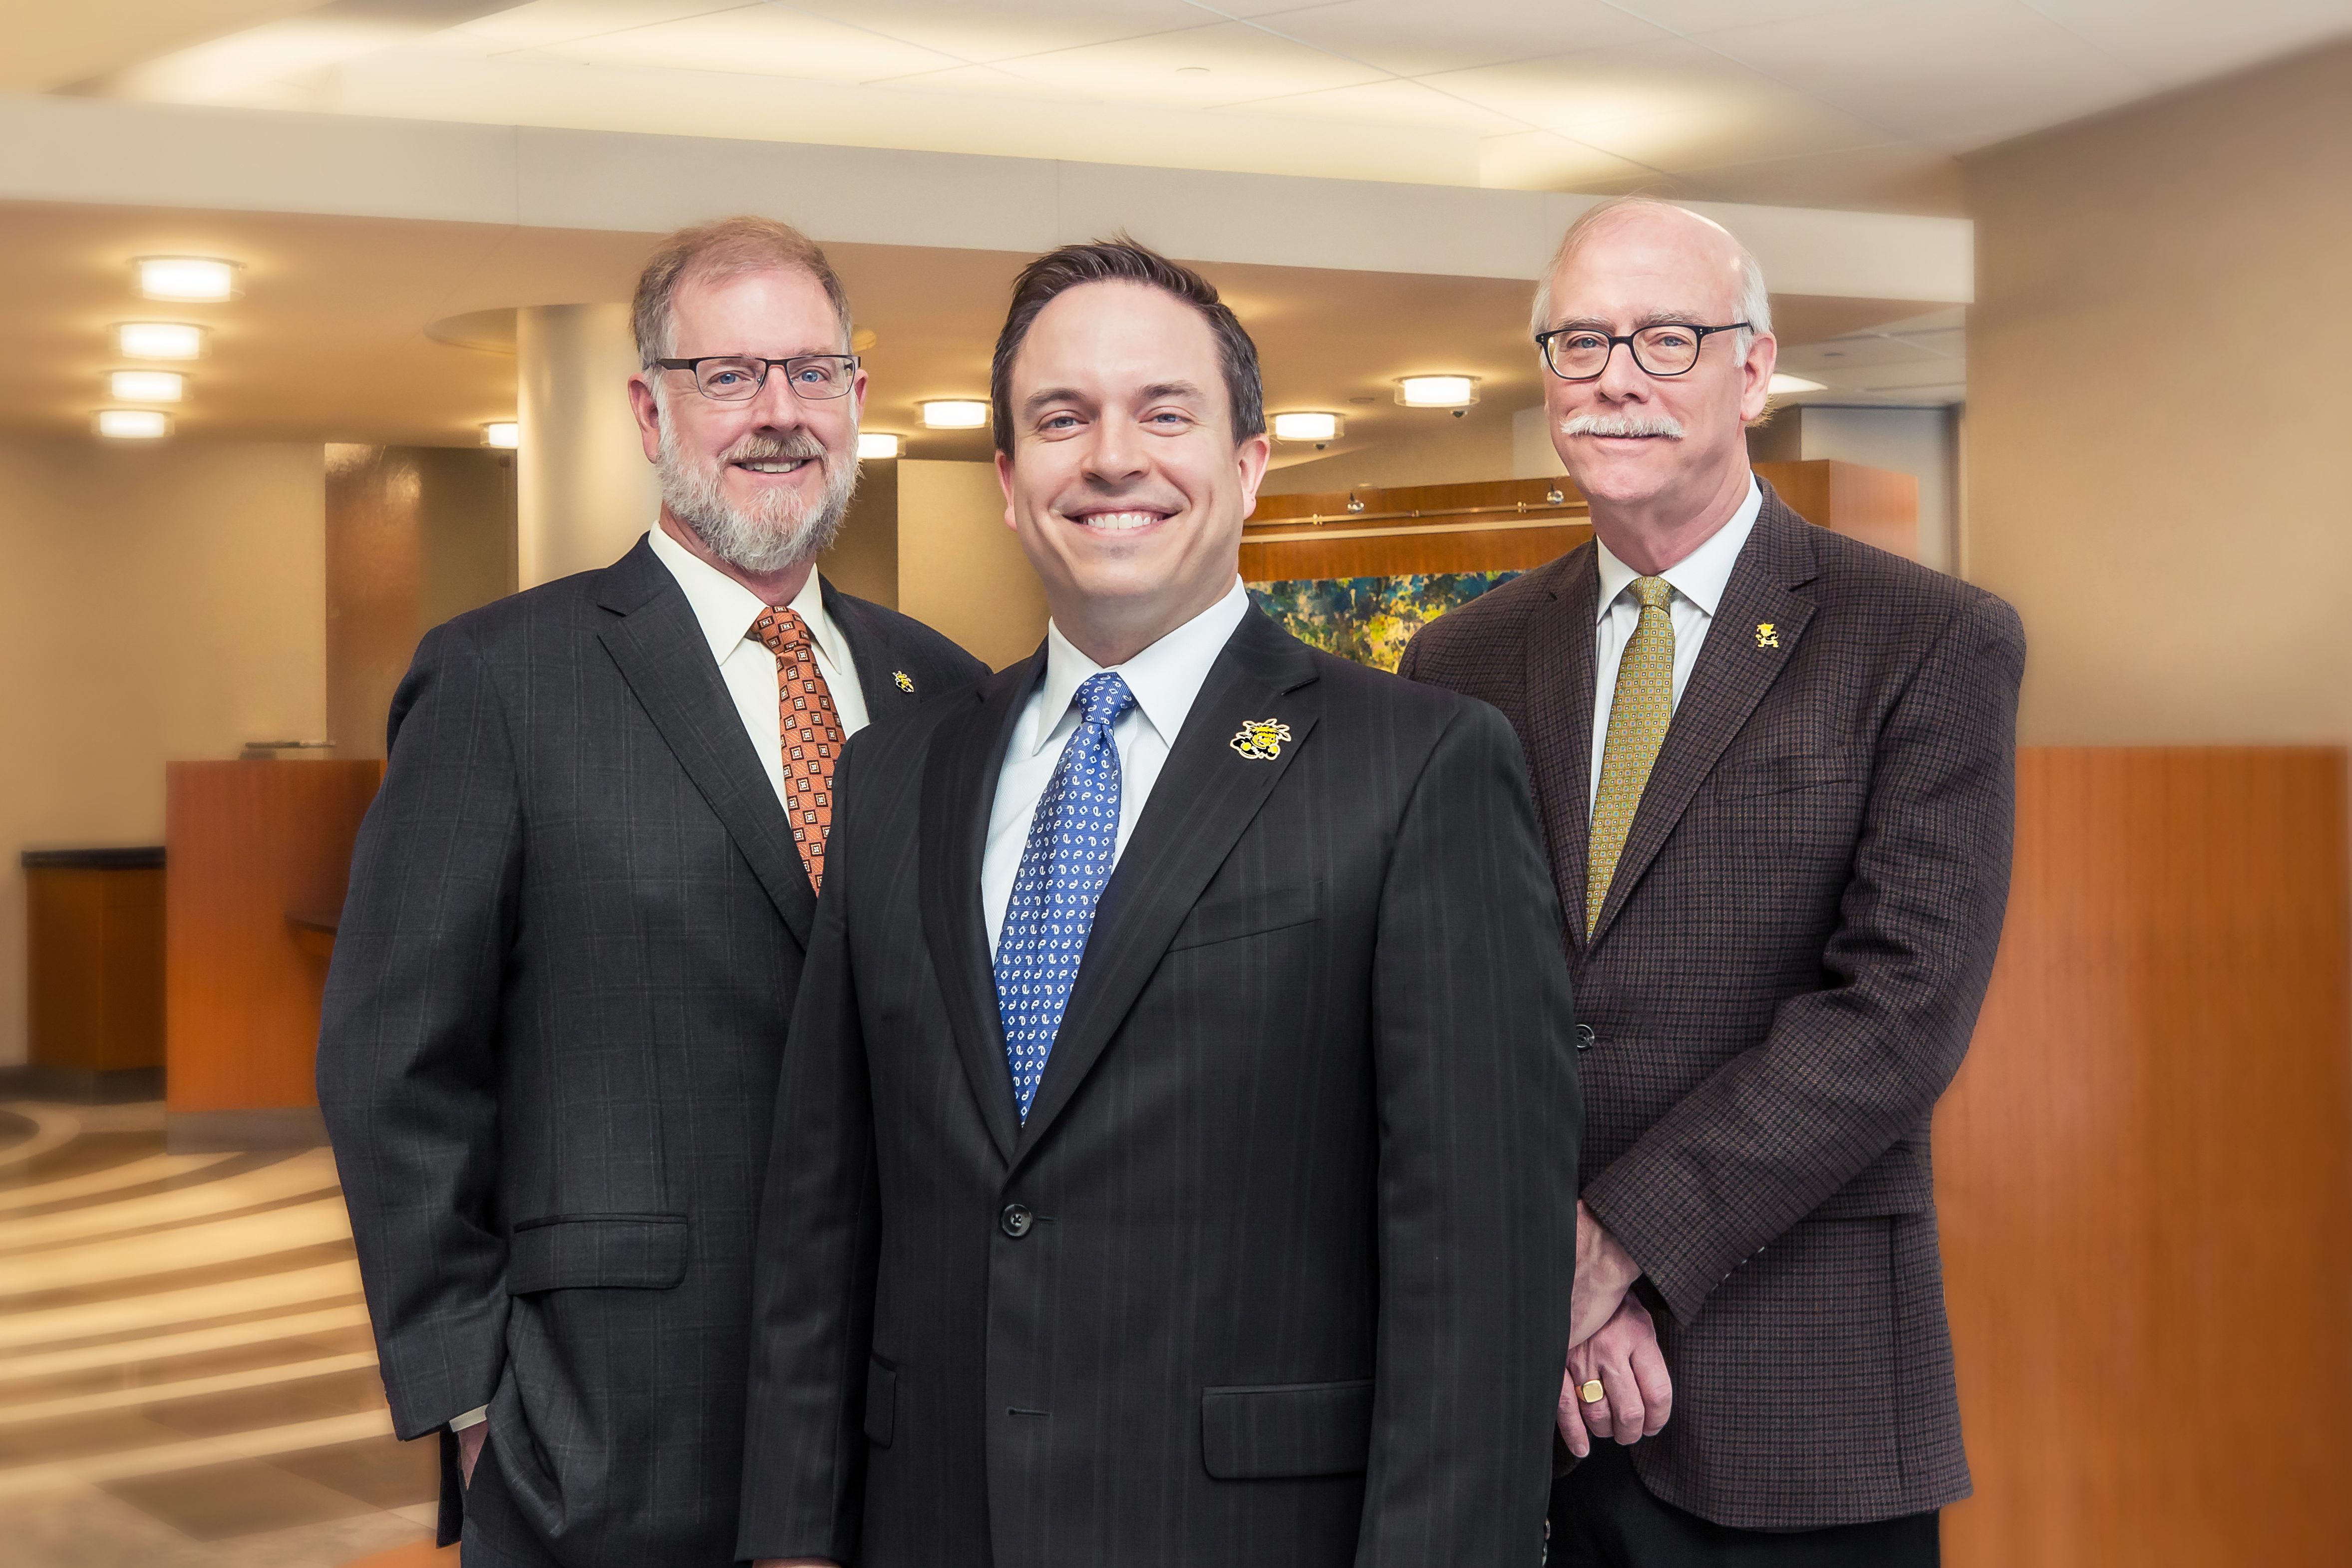 Members of the Bastian family and their family-owned Fidelity Bank have contributed $1 million to Wichita State University to help build a new home for the W. Frank Barton School of Business. From left are Clark Bastian, Aaron Bastian and Clay Bastian.